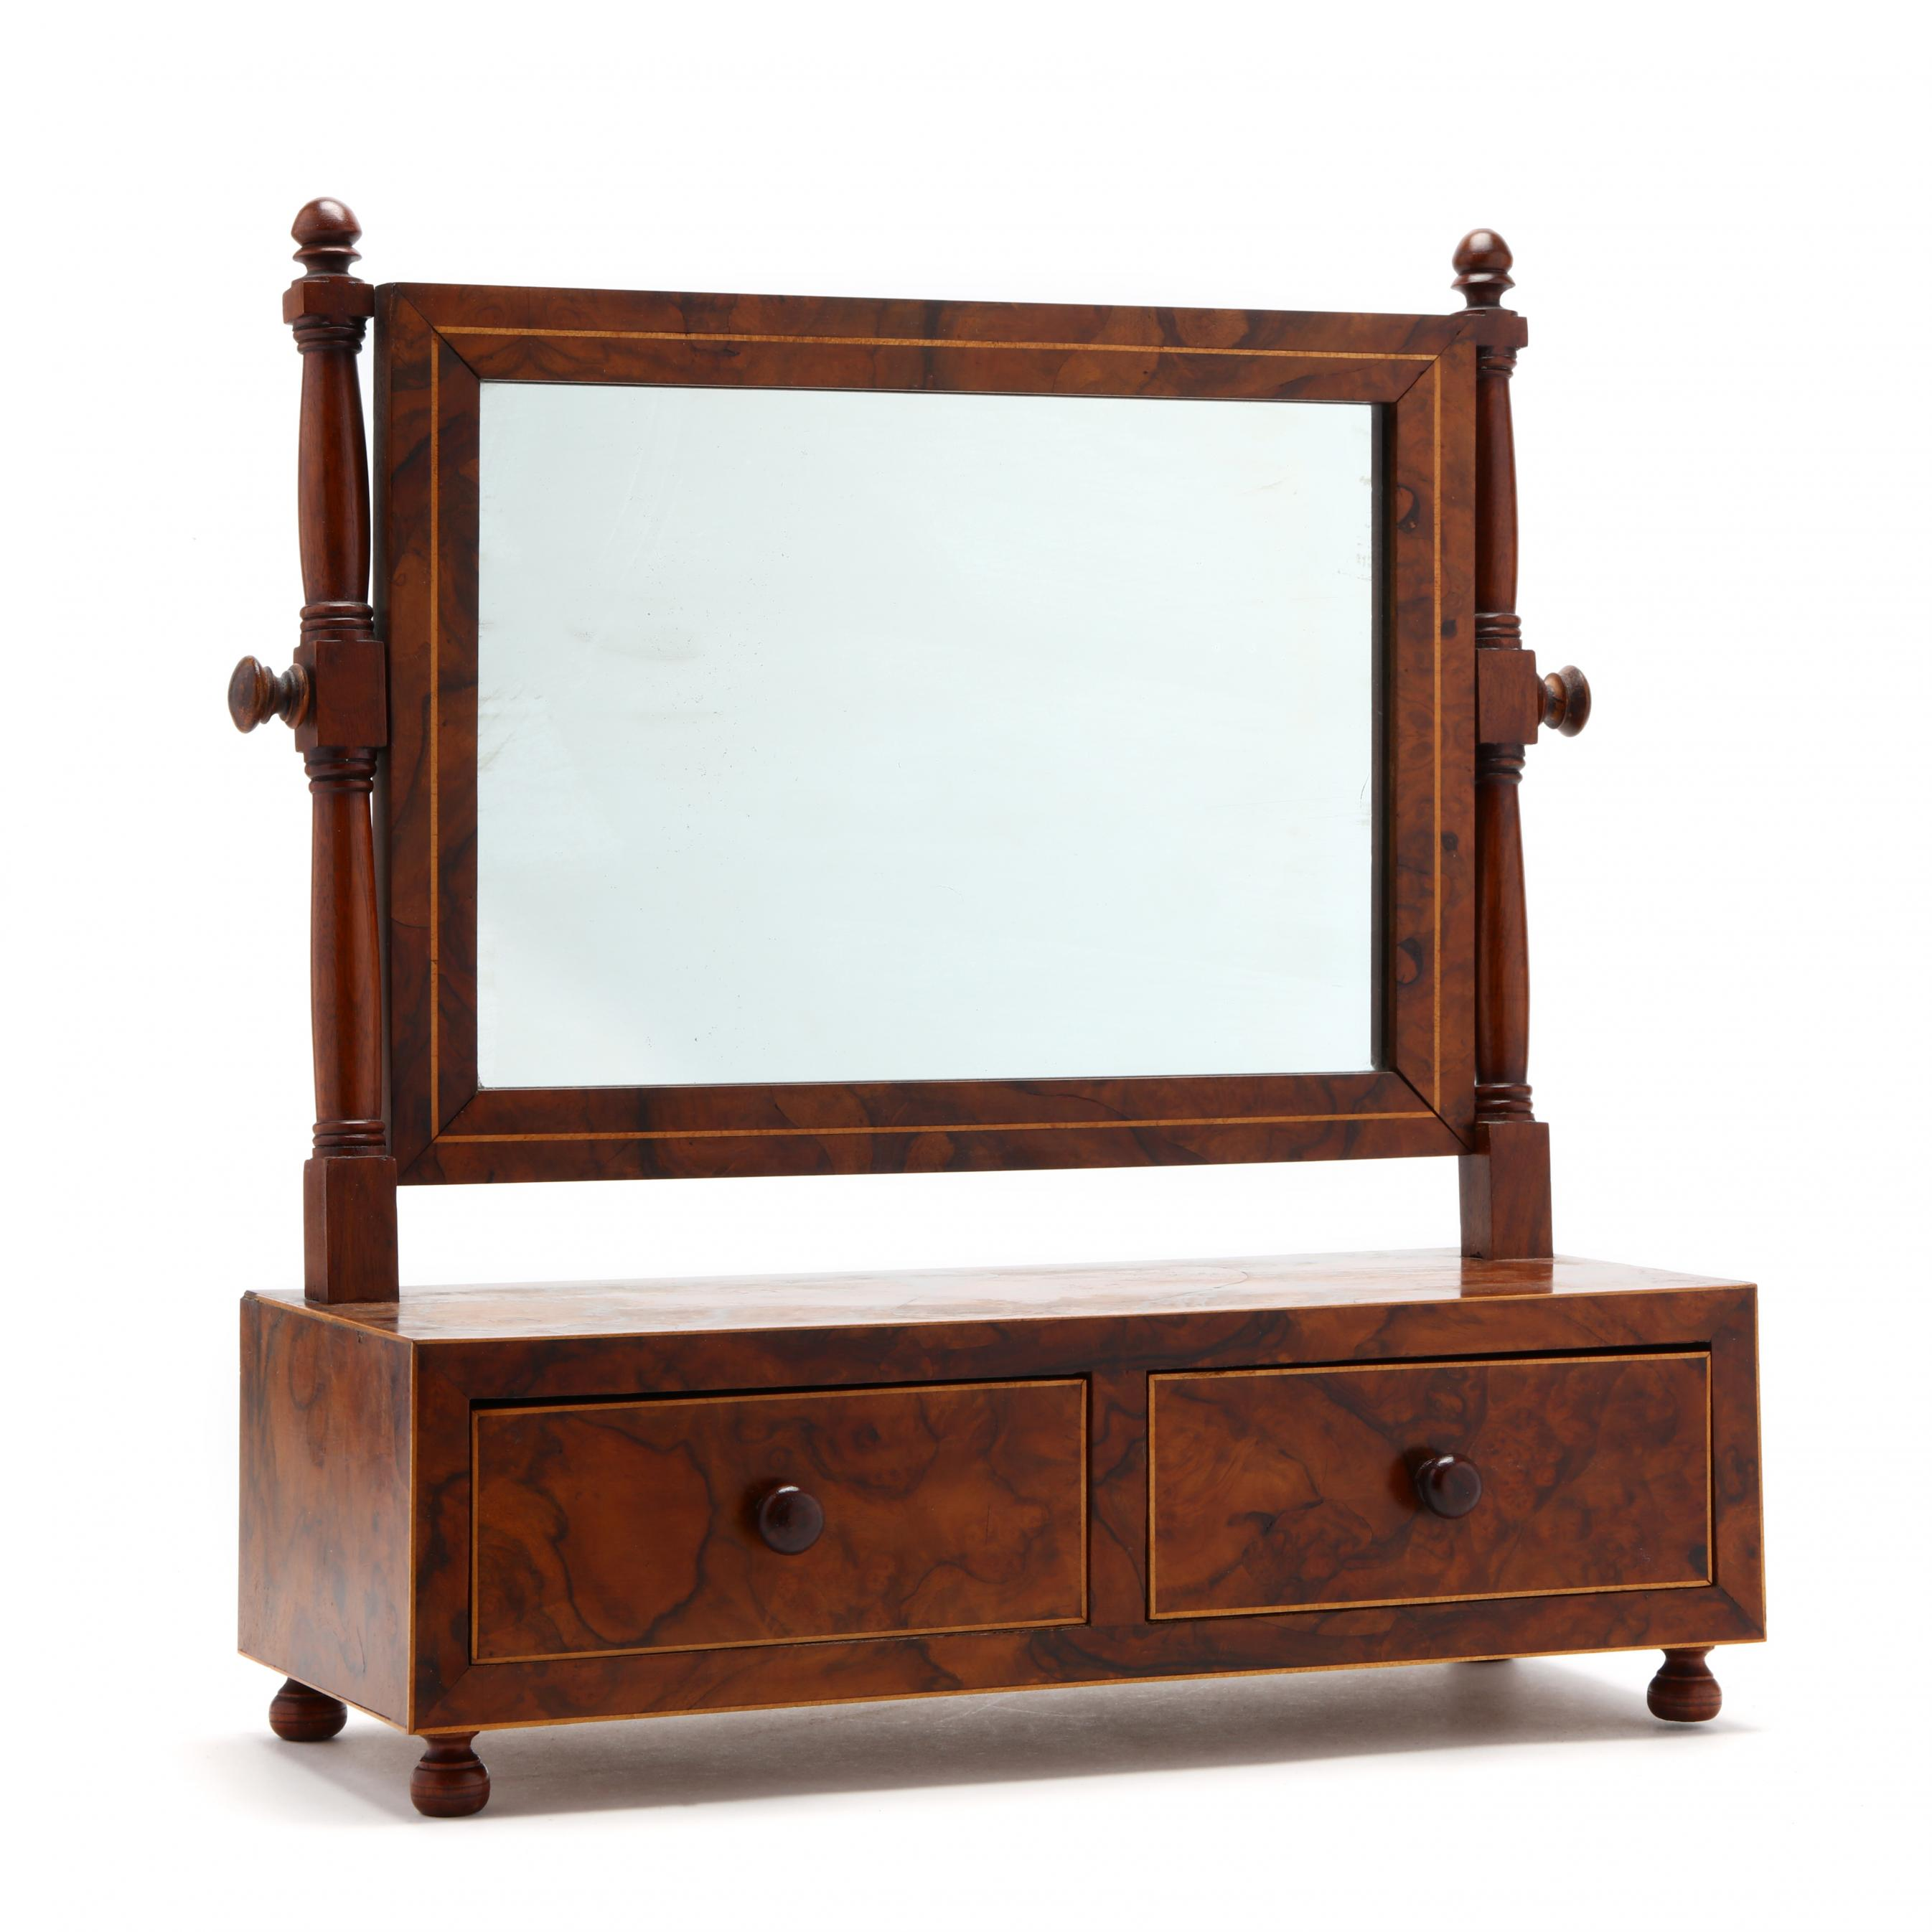 edwardian-burlwood-shaving-mirror